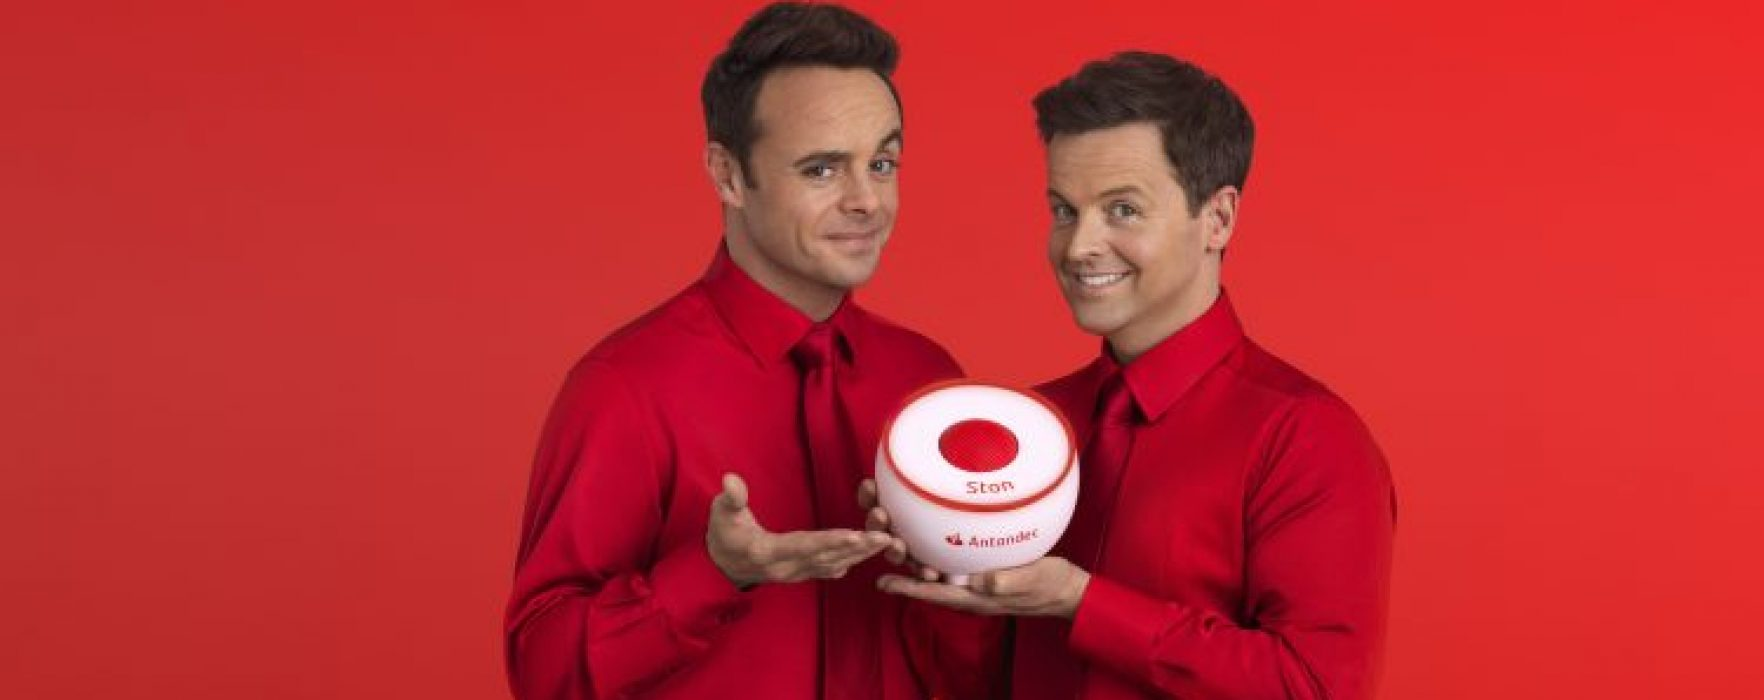 Ant and Dec star in hilarious spoof banking ad